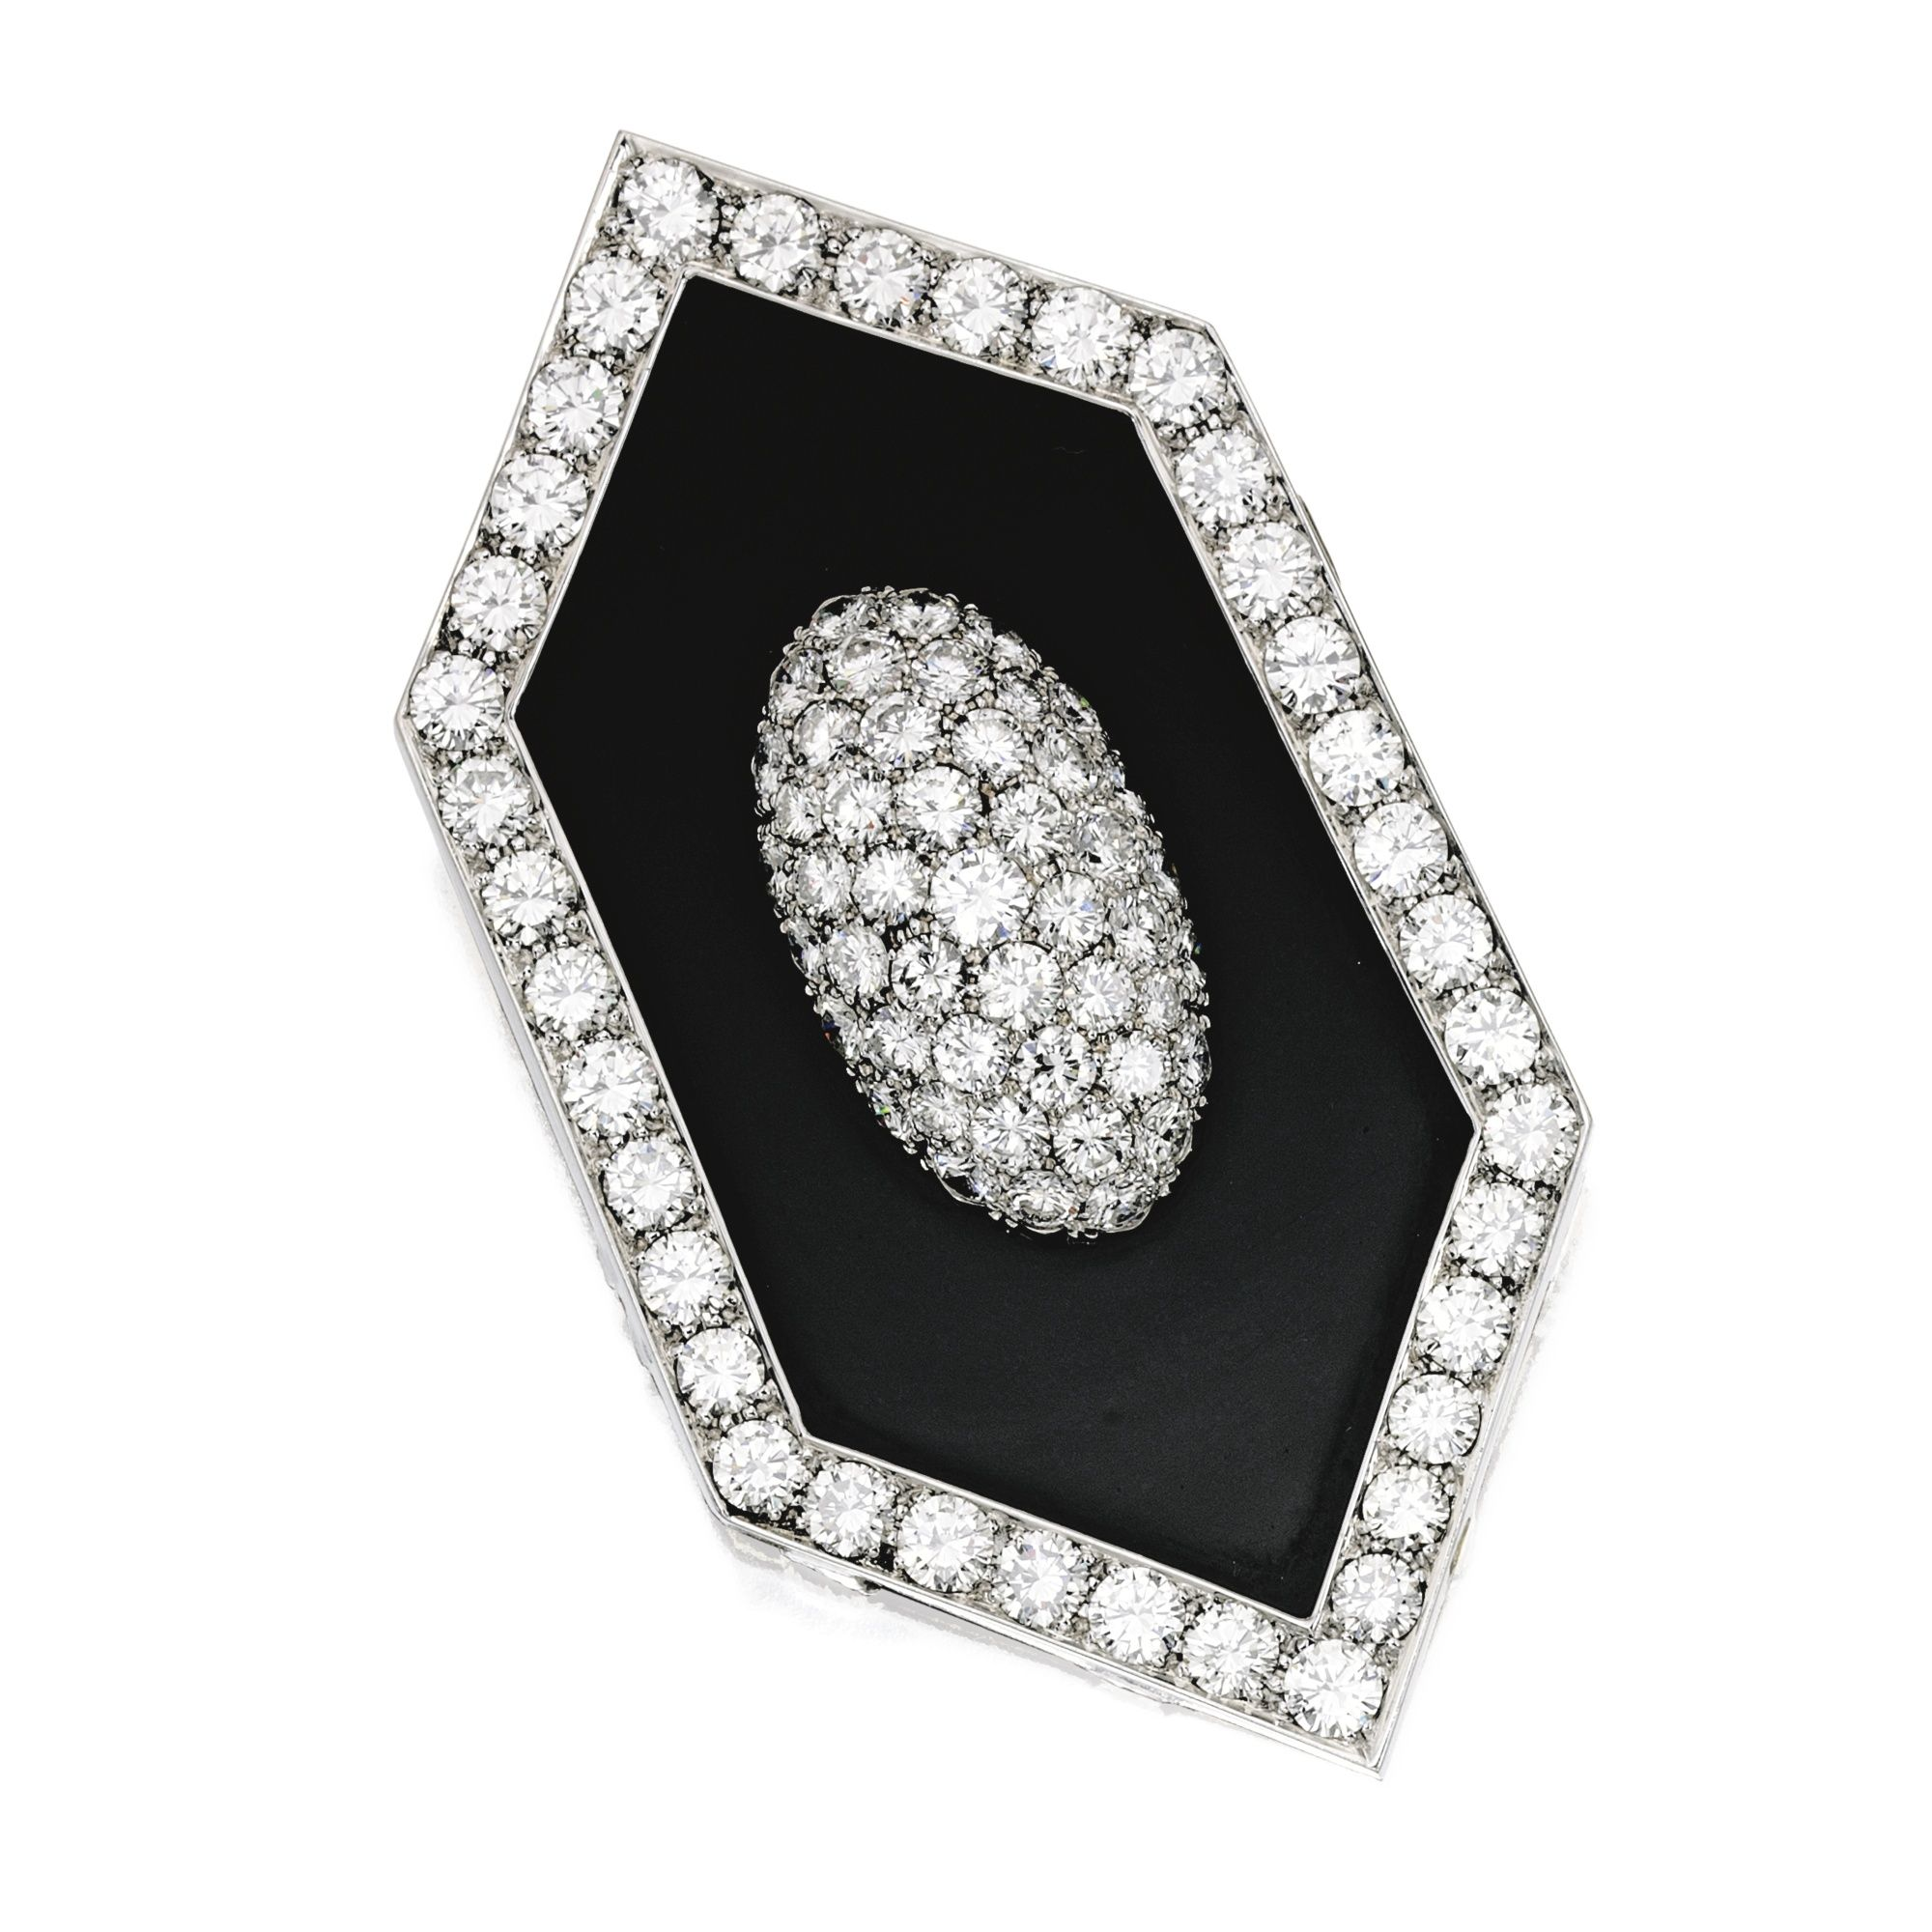 18 KARAT WHITE GOLD, ONYX AND DIAMOND PENDANT-BROOCH. The navette-shaped pendant-brooch centered and framed by numerous round diamonds weighing approximately 21.75 carats, with brooch fitting and pendant hooks, circa 1970.